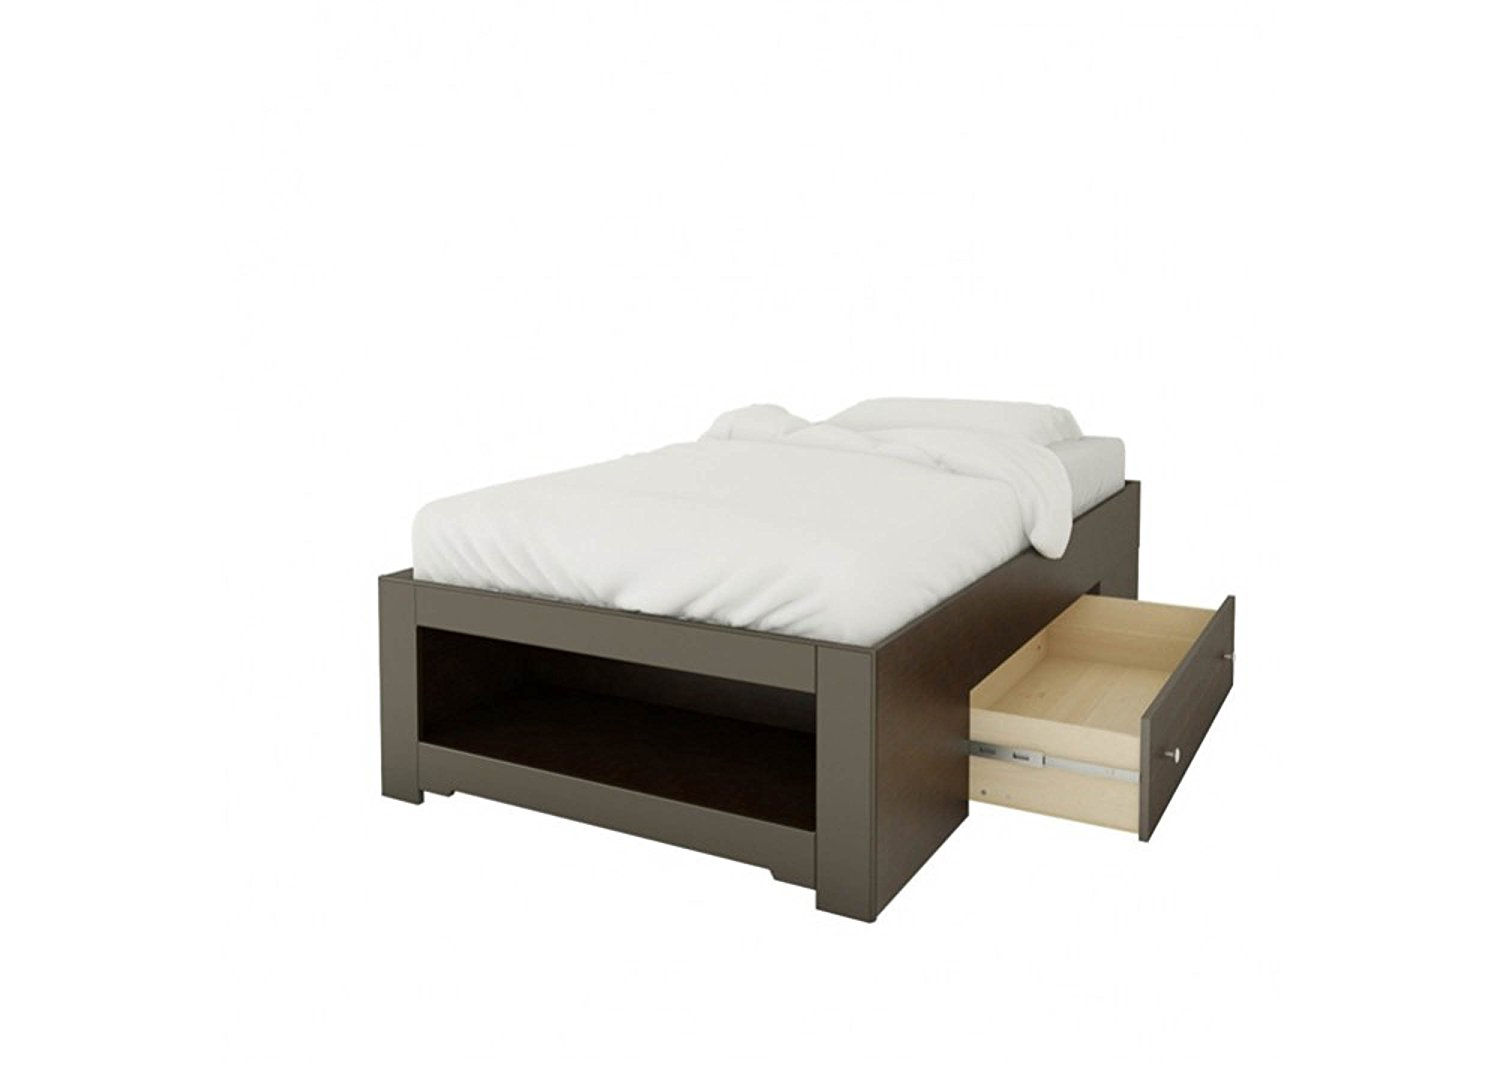 Haxby Twin Size Storage Bed - Espresso